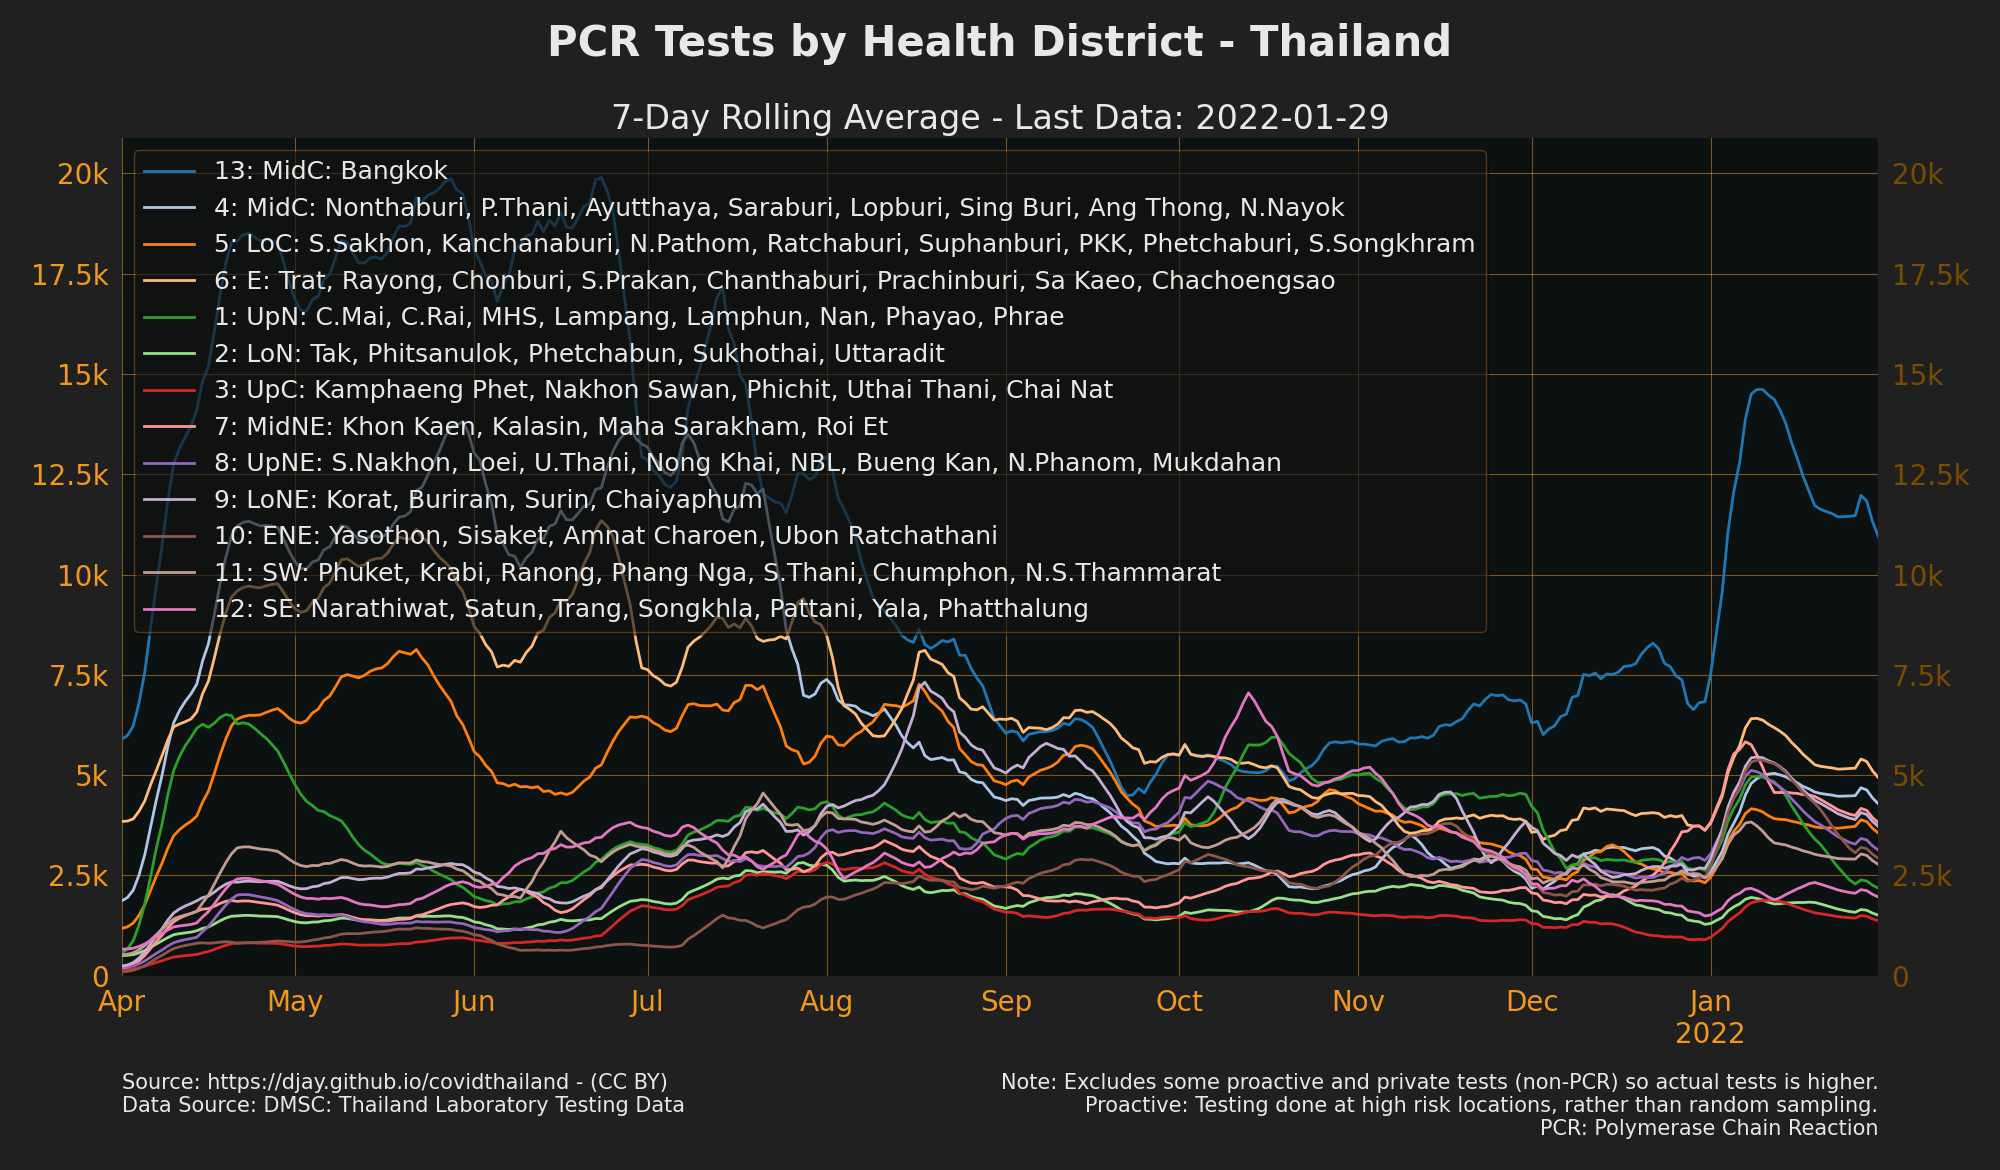 Tests by health area